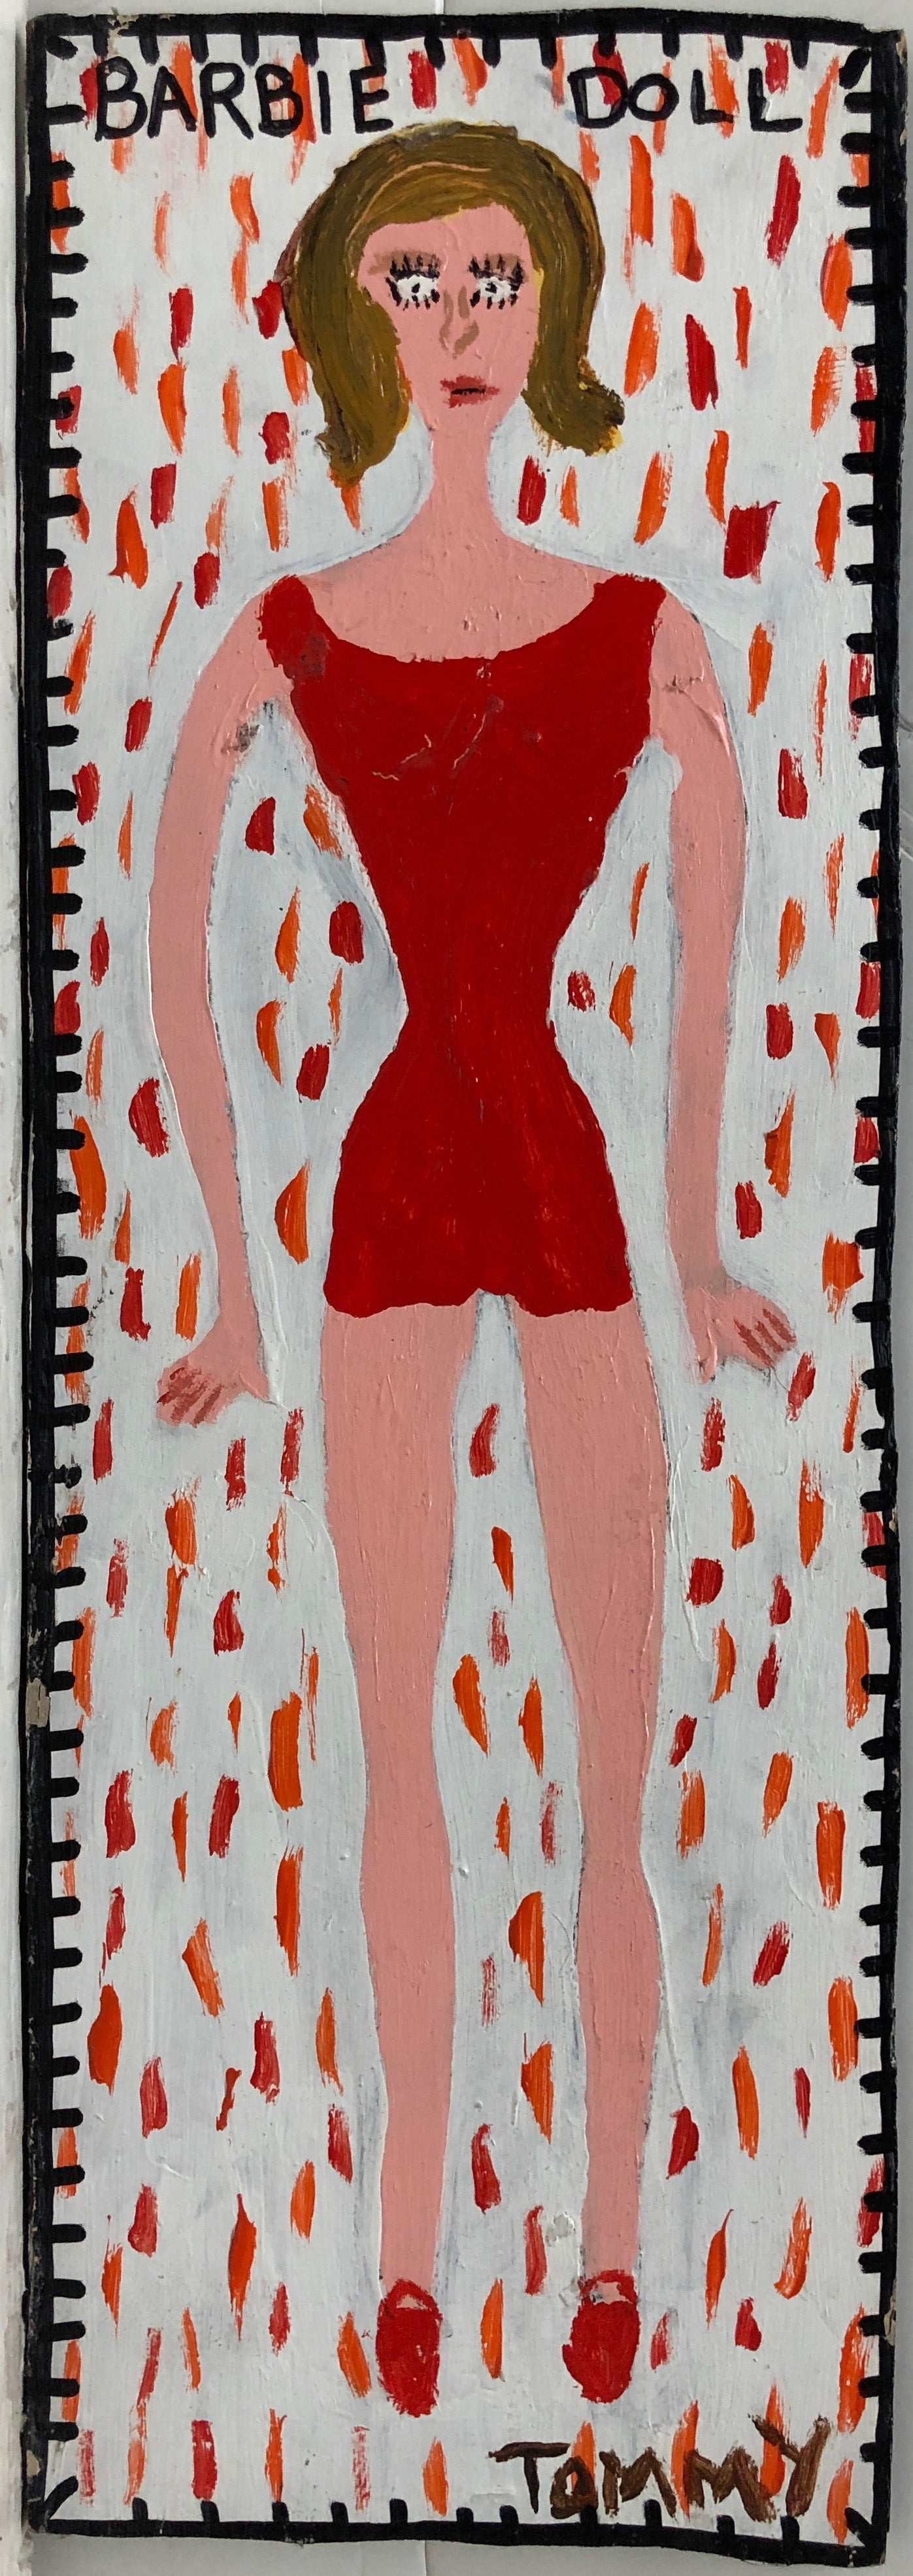 Painting of a Barbie doll in a red romper and matching red shoes.